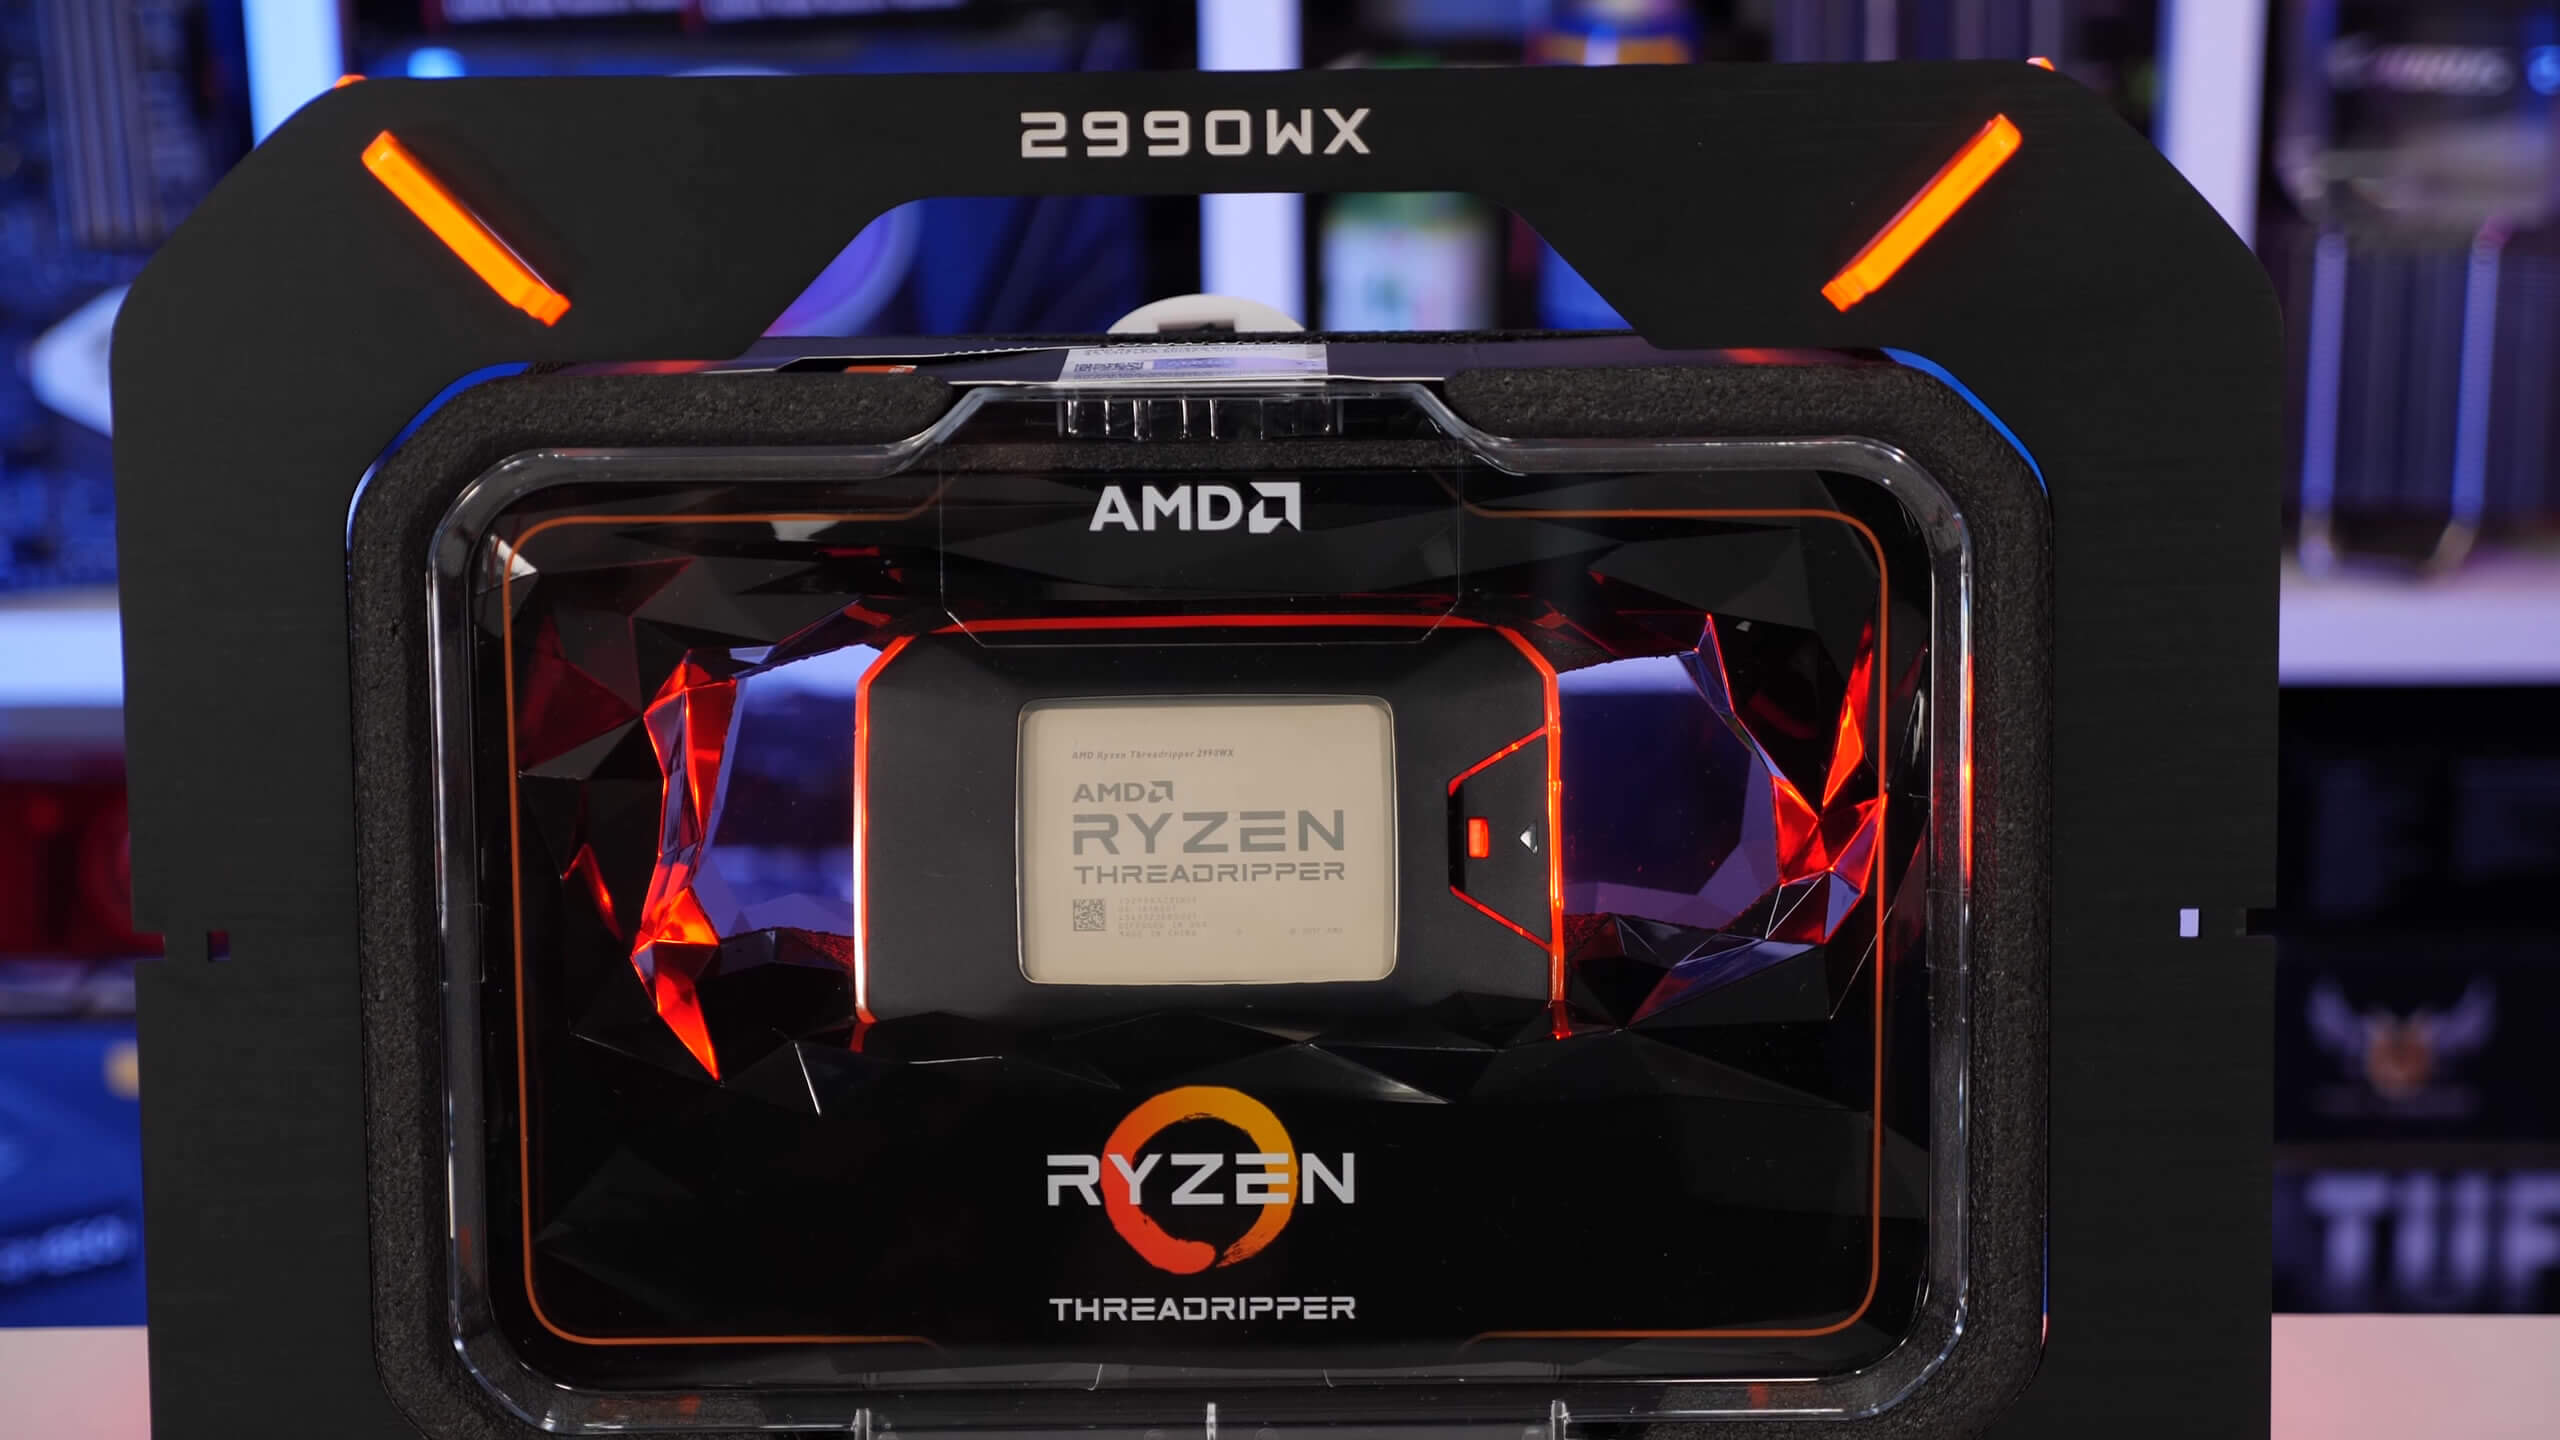 One year with Threadripper - TechSpot